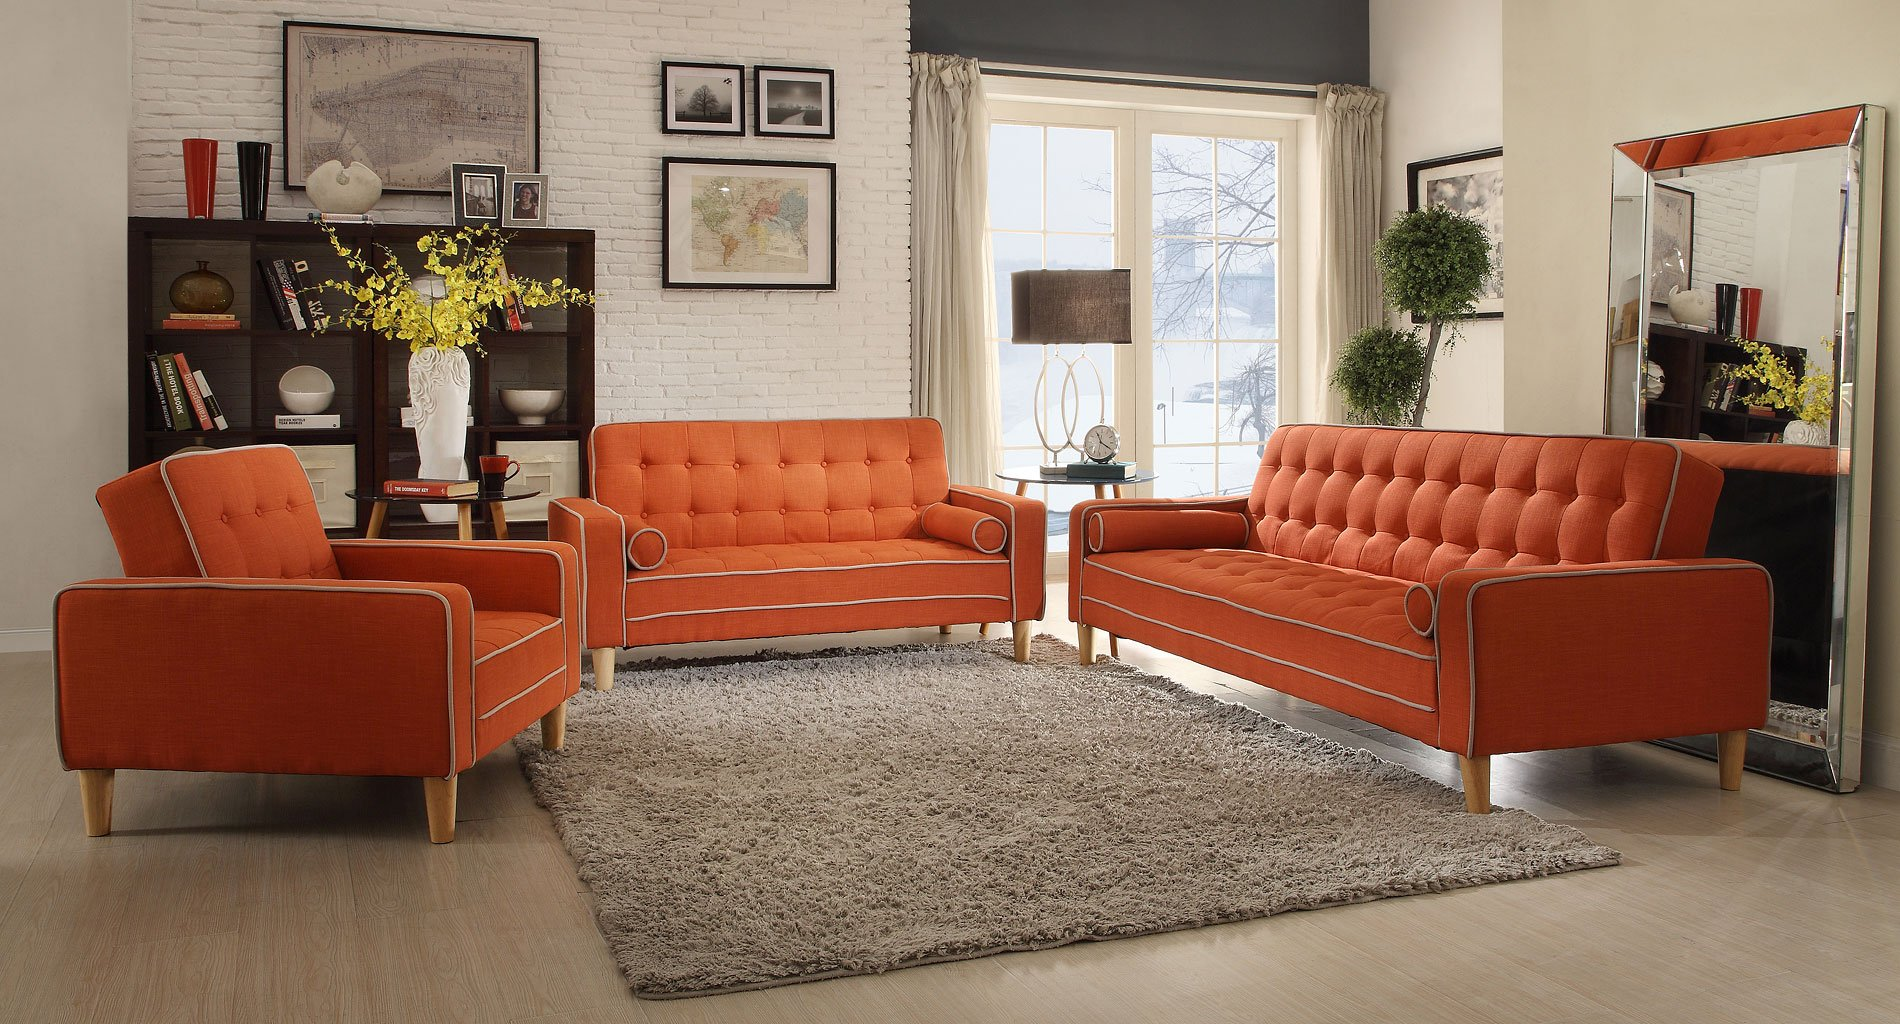 G835 Living Room Set (Orange)